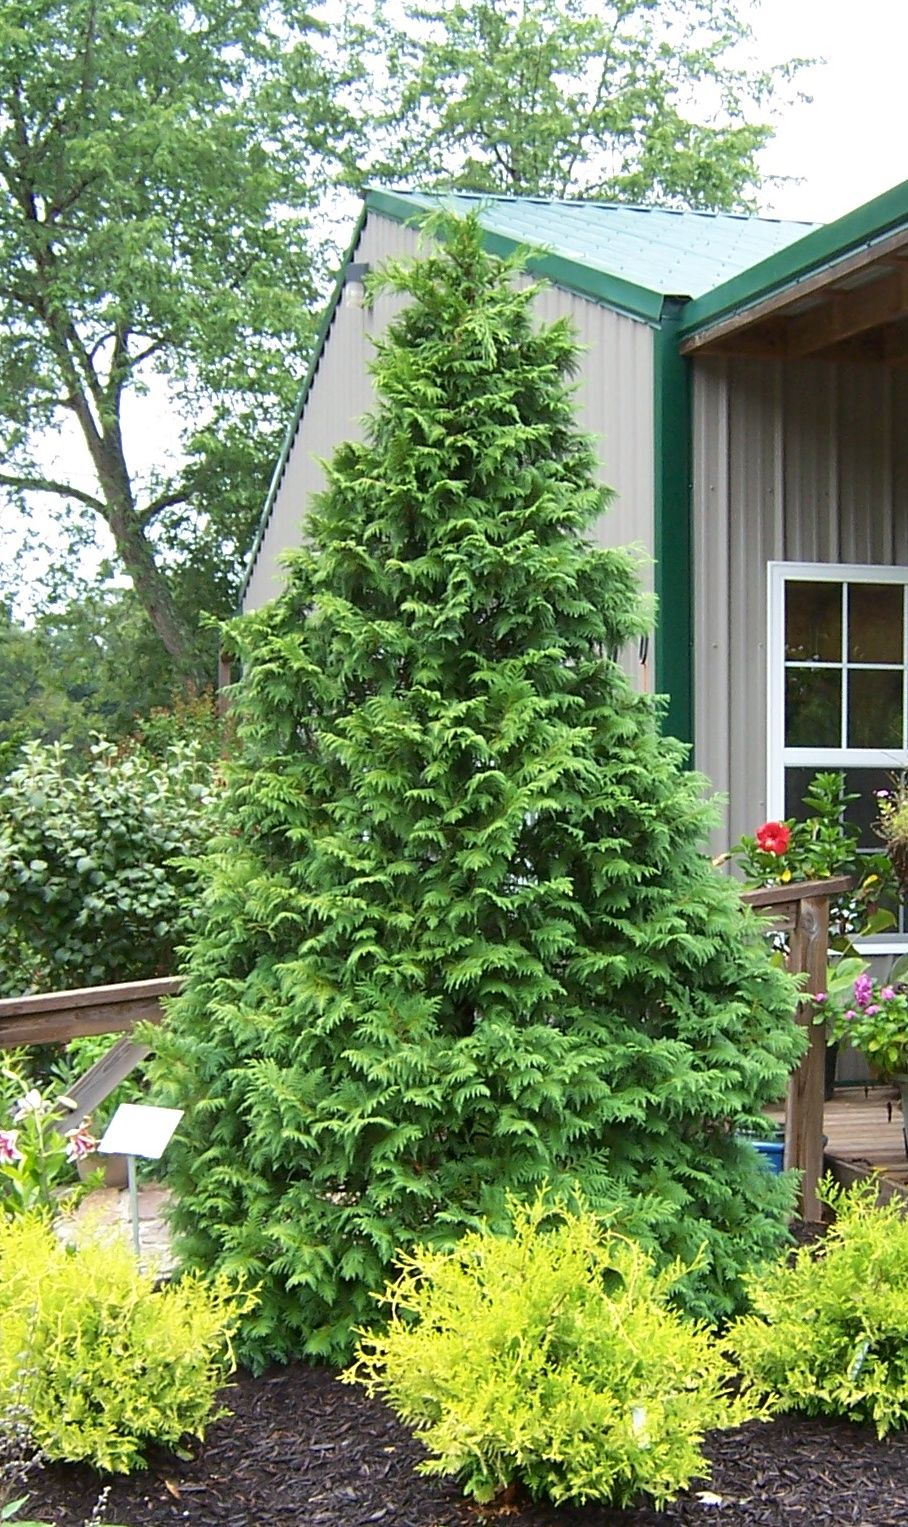 Soft Serve False Cypress Is A Beautiful Evergreen With Easy To Touch Branches It Will